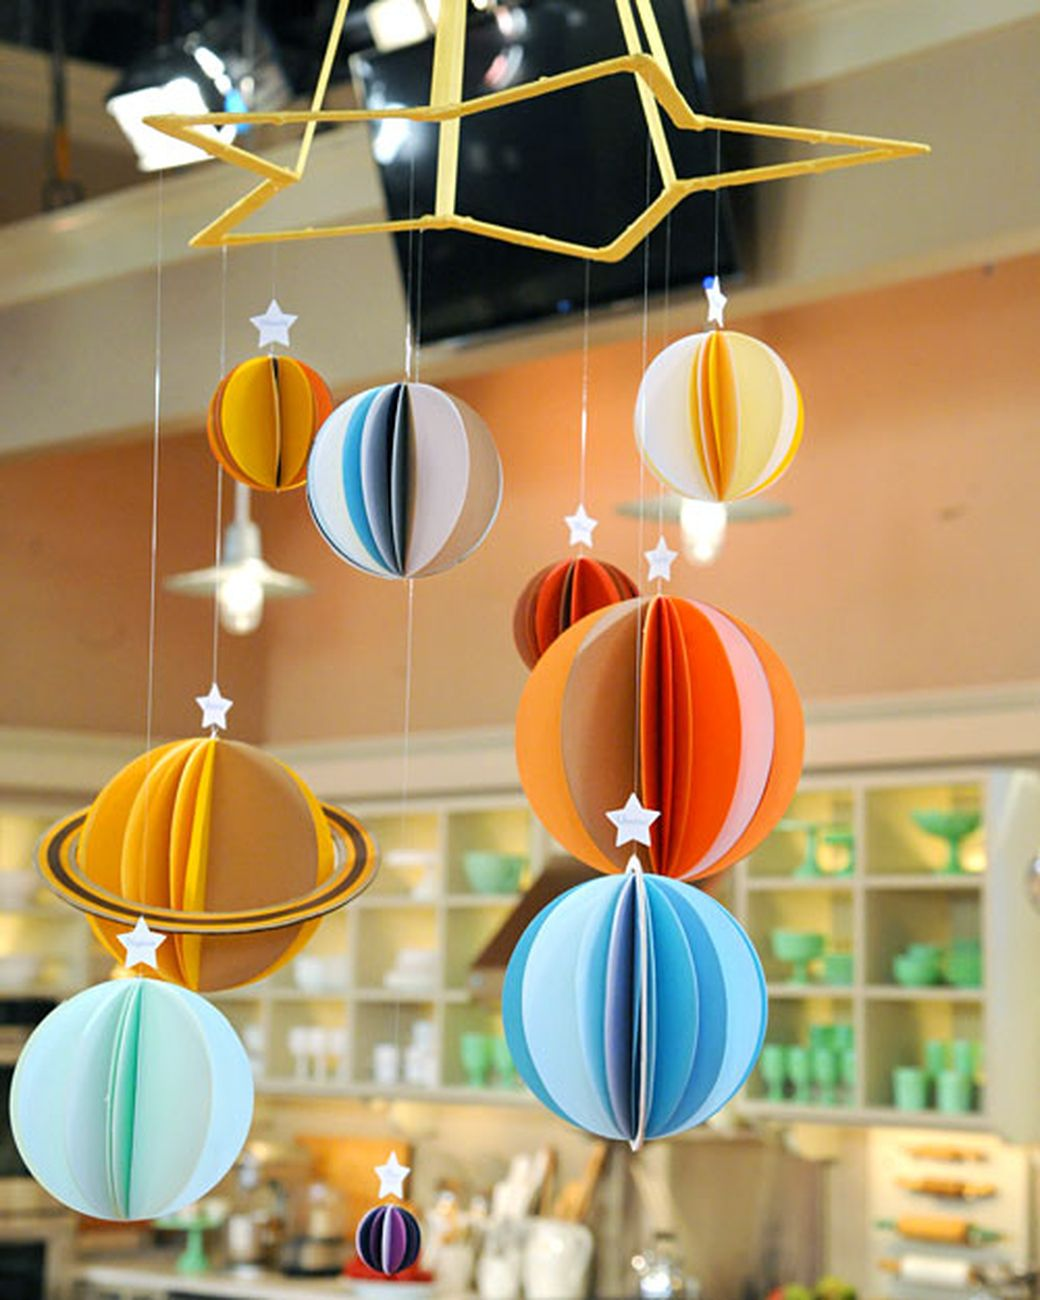 62d514219f This colorful solar system mobile is a stylish addition to any nursery and  an excellent way to introduce older children to the planets.